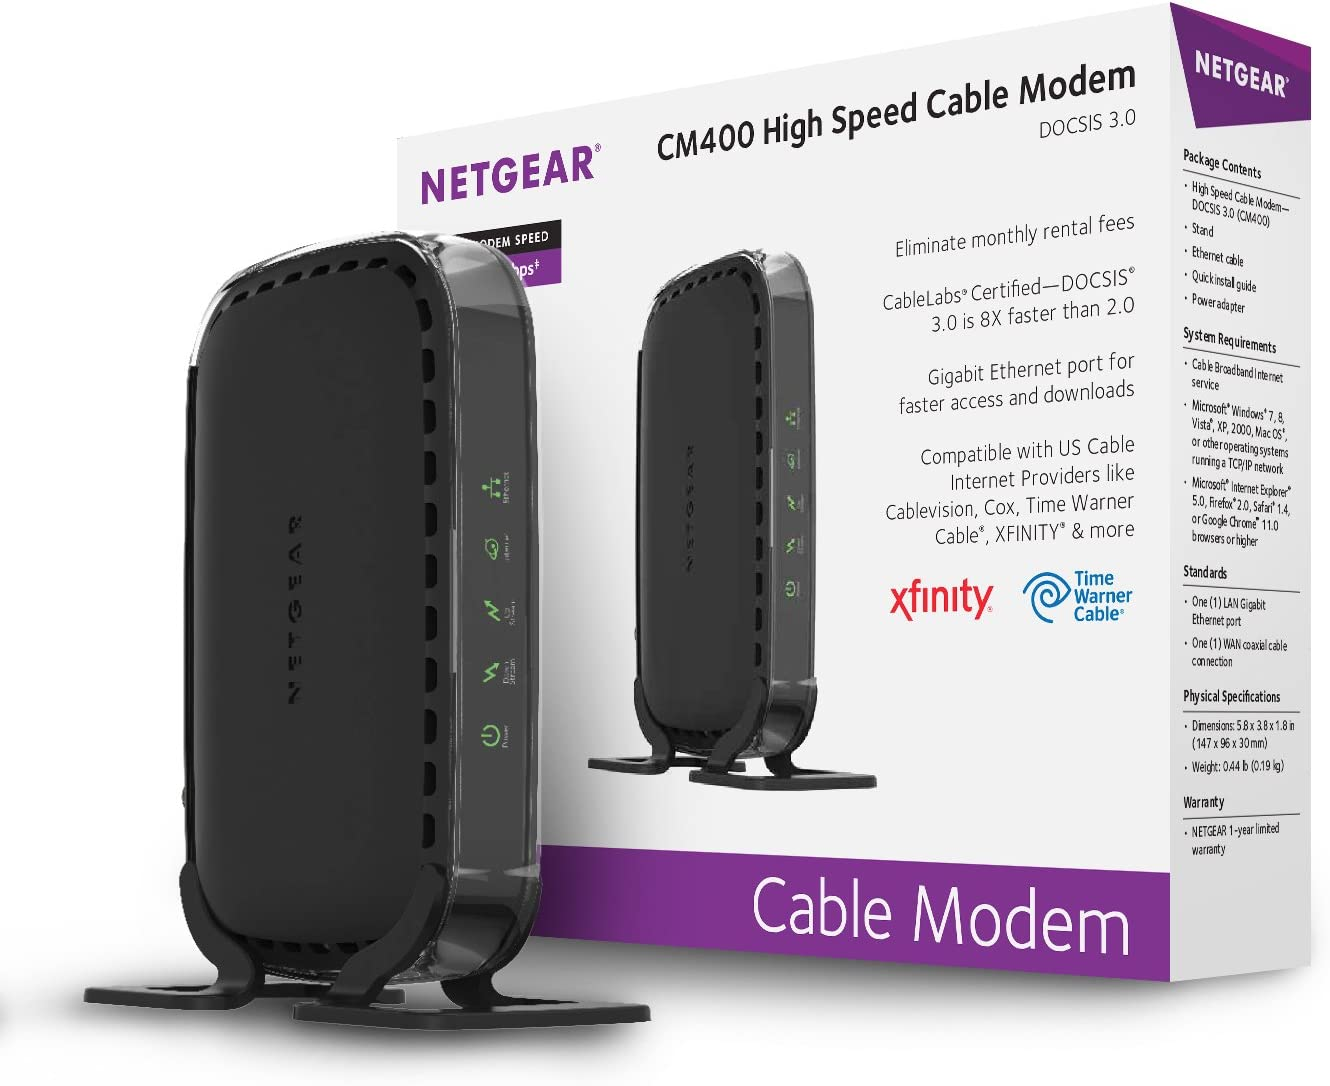 NETGEAR Cable Modem CM400 Compatible with Cable Providers Xfinity by Comcast, Spectrum, Cox   For Cable Plans Up to 100 Mbps   DOCSIS3.0